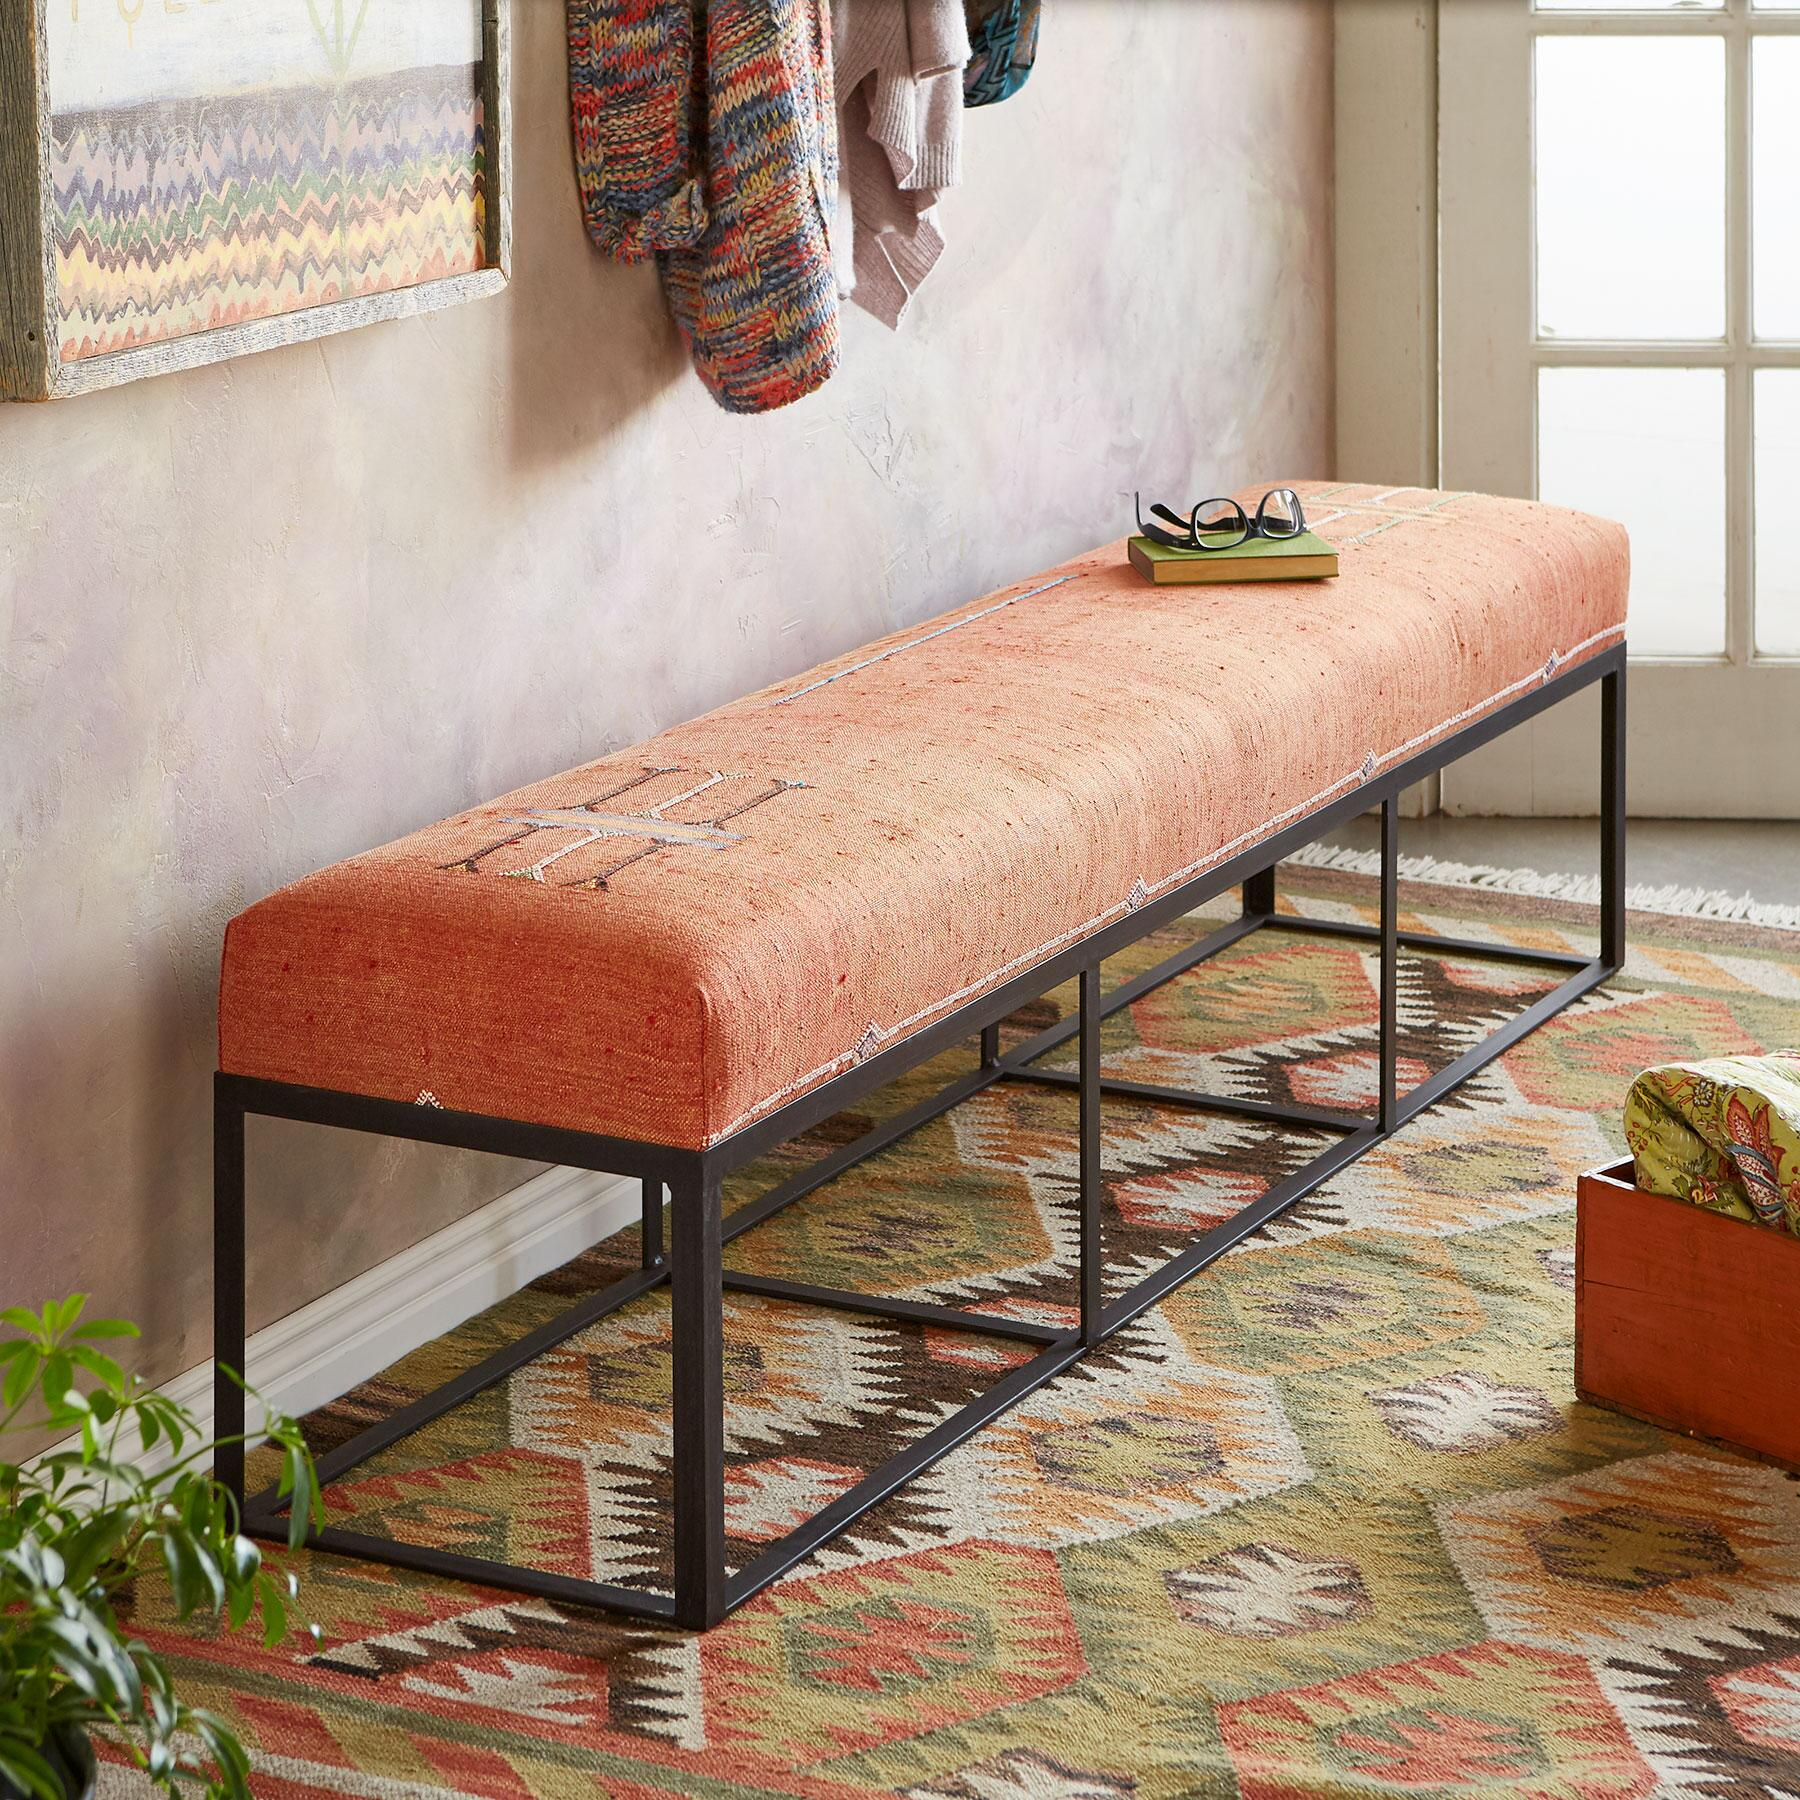 JBEL SIRWG MOROCCAN BENCH: View 1